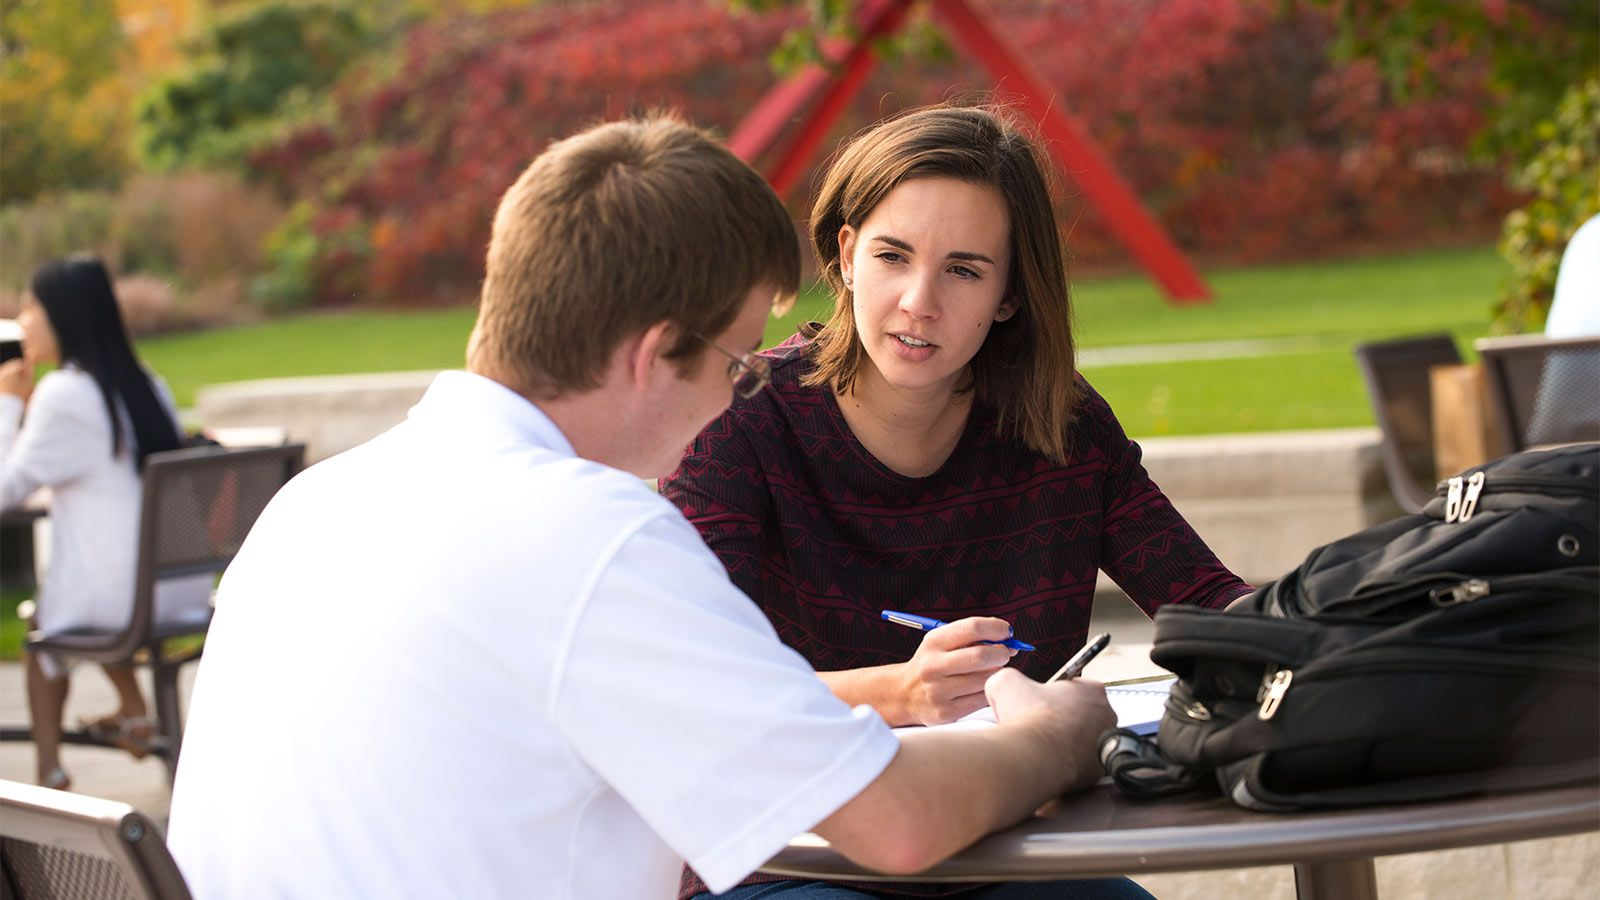 Graduate students study outside the Adel Coryell Learning Center on City Campus